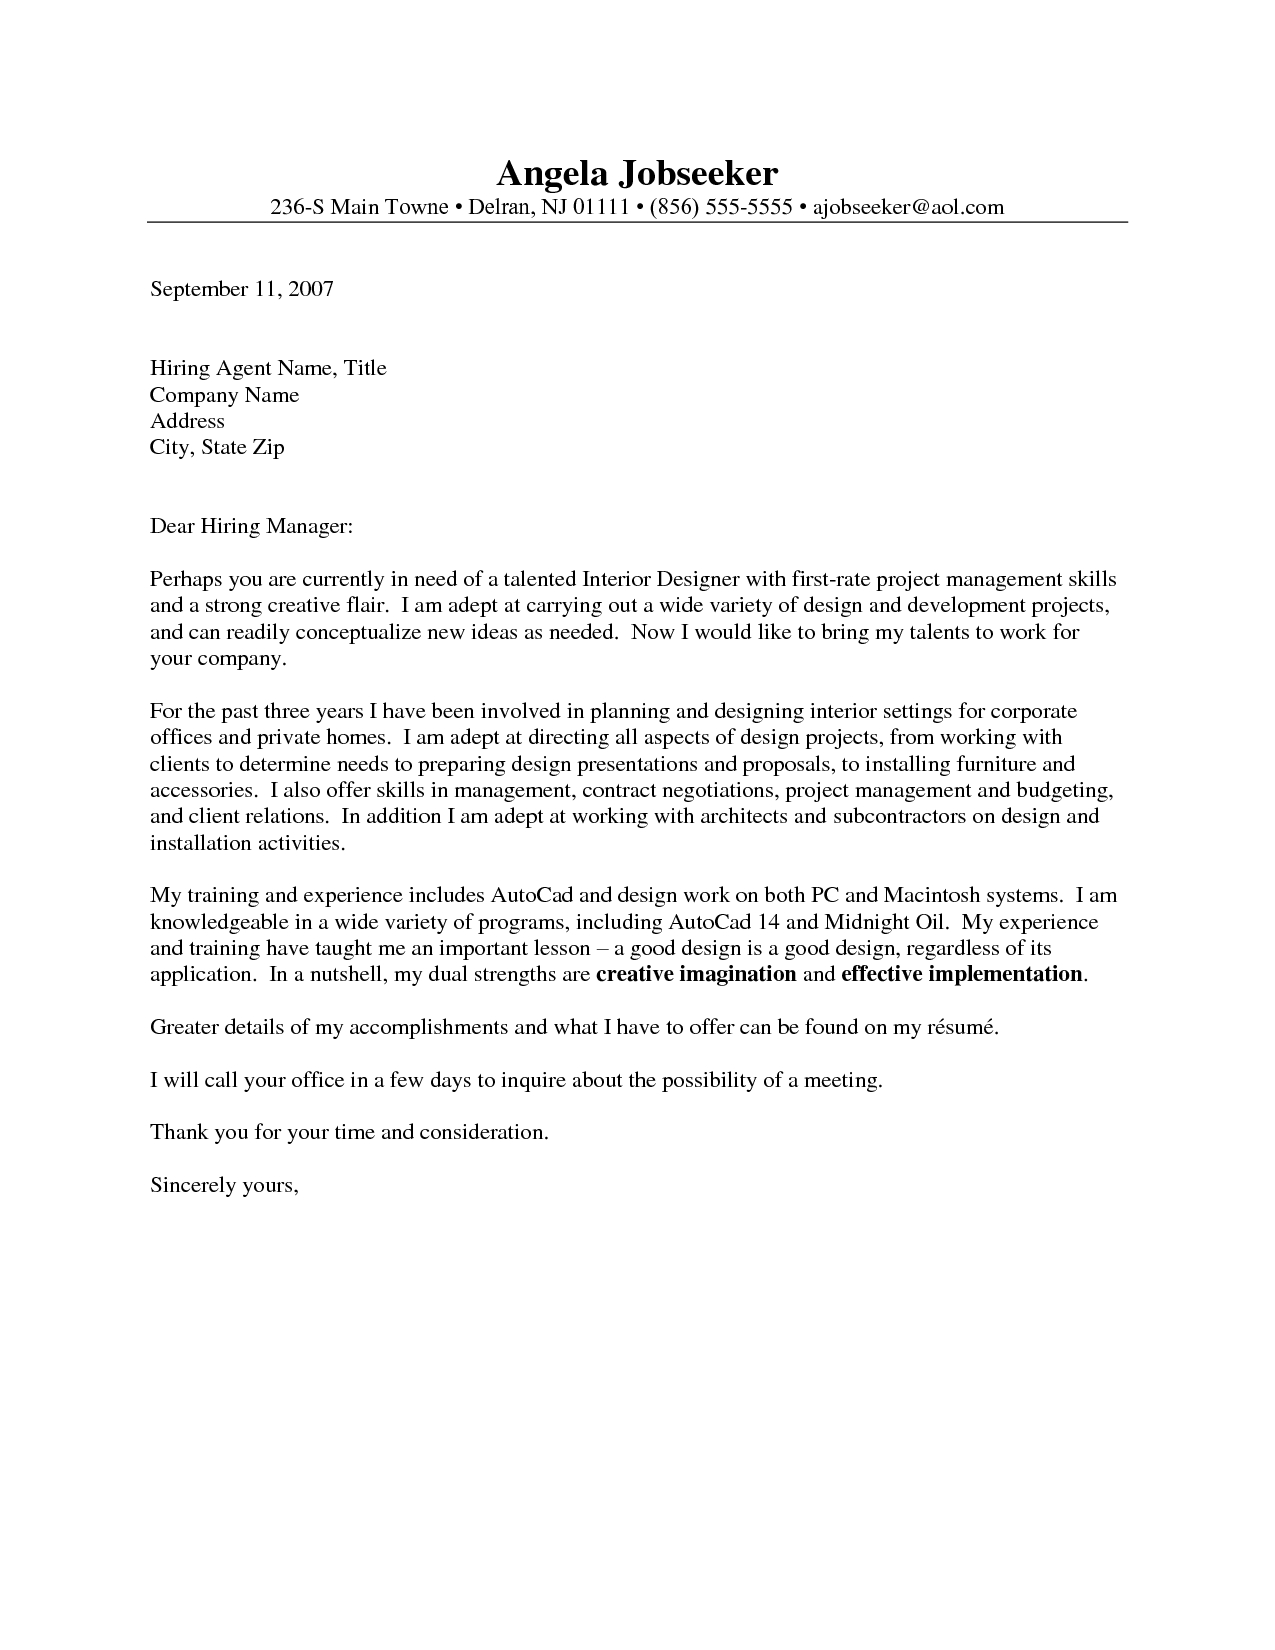 Graphic Design Cover Letter Template - Outstanding Cover Letter Examples